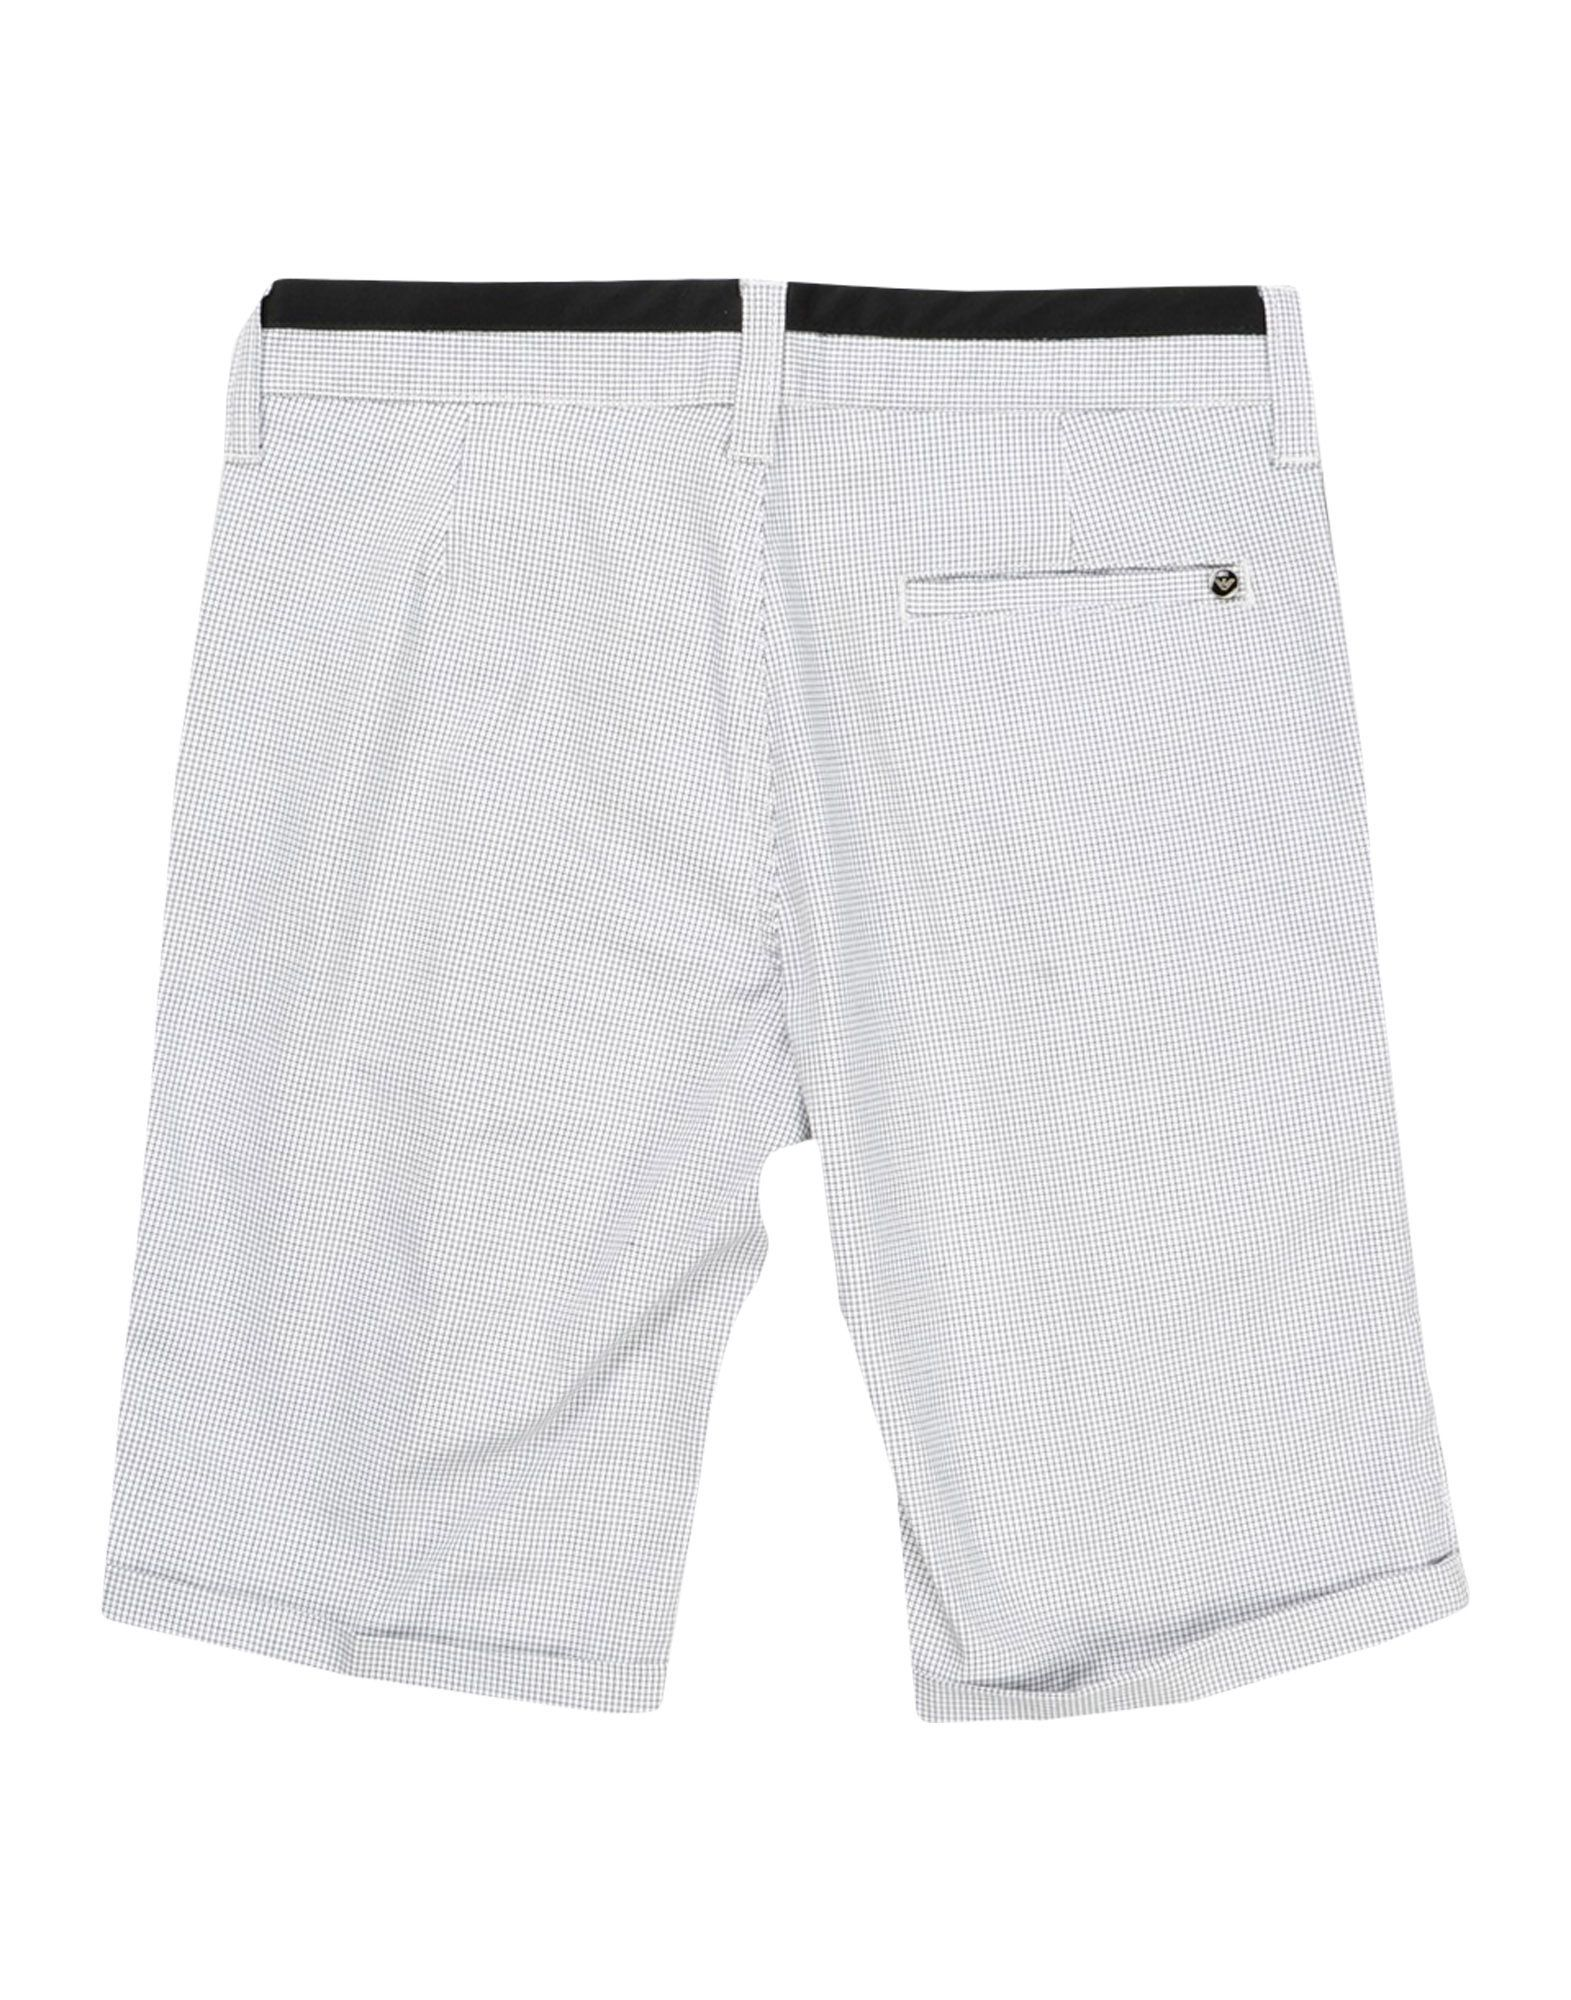 TROUSERS Armani Junior Black Boy Cotton